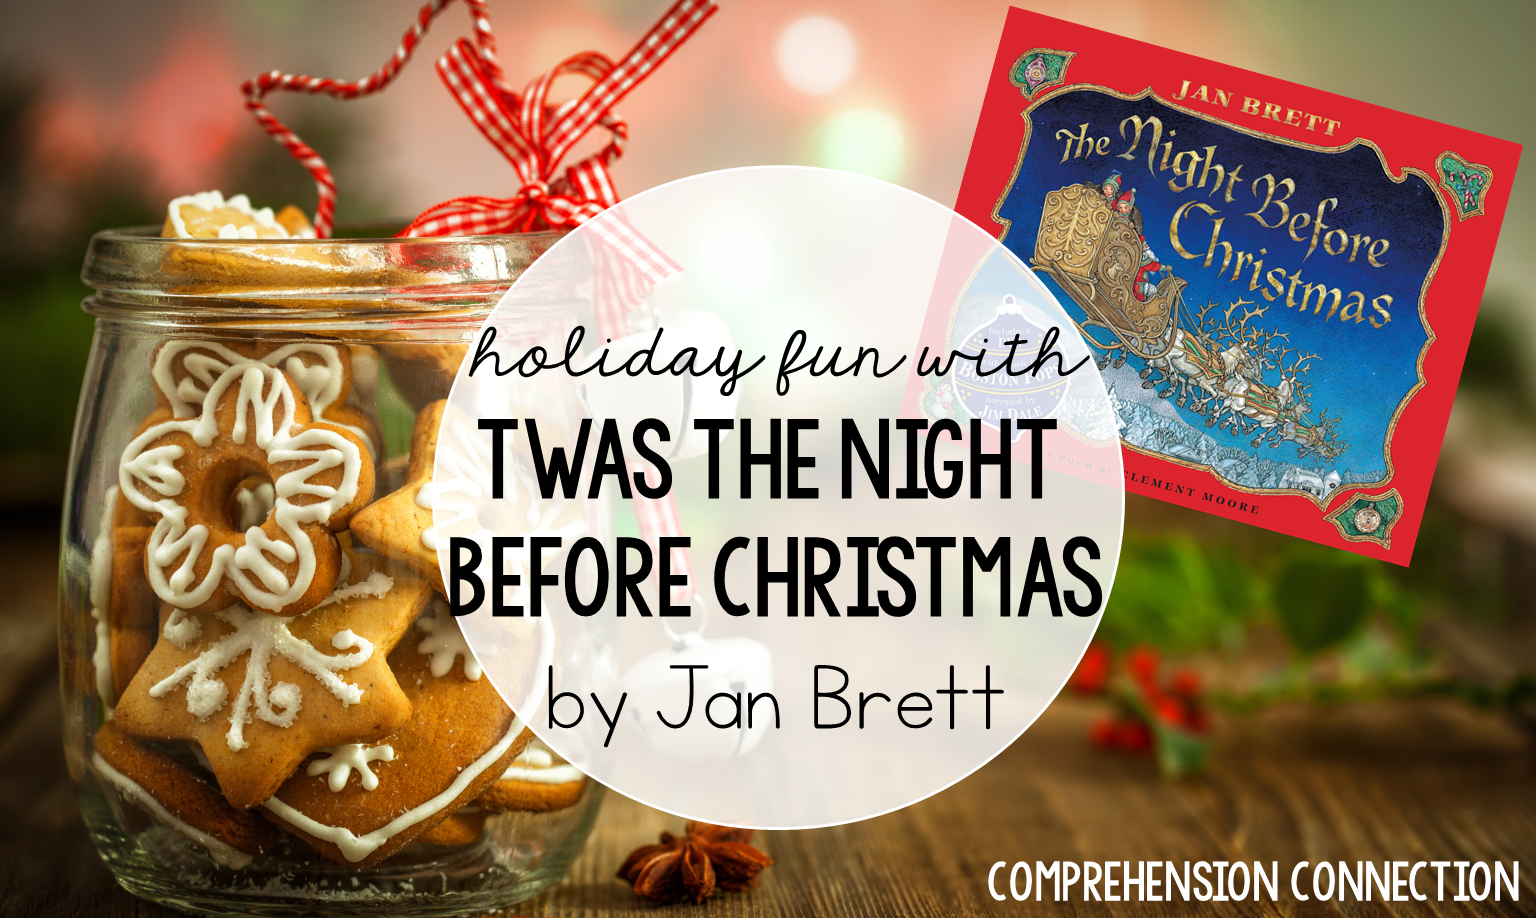 There are many versions of Twas the Night Before Christmas, and that means many teaching options too. Check out this post for ways you can use various versions for teaching reading skills and writing.